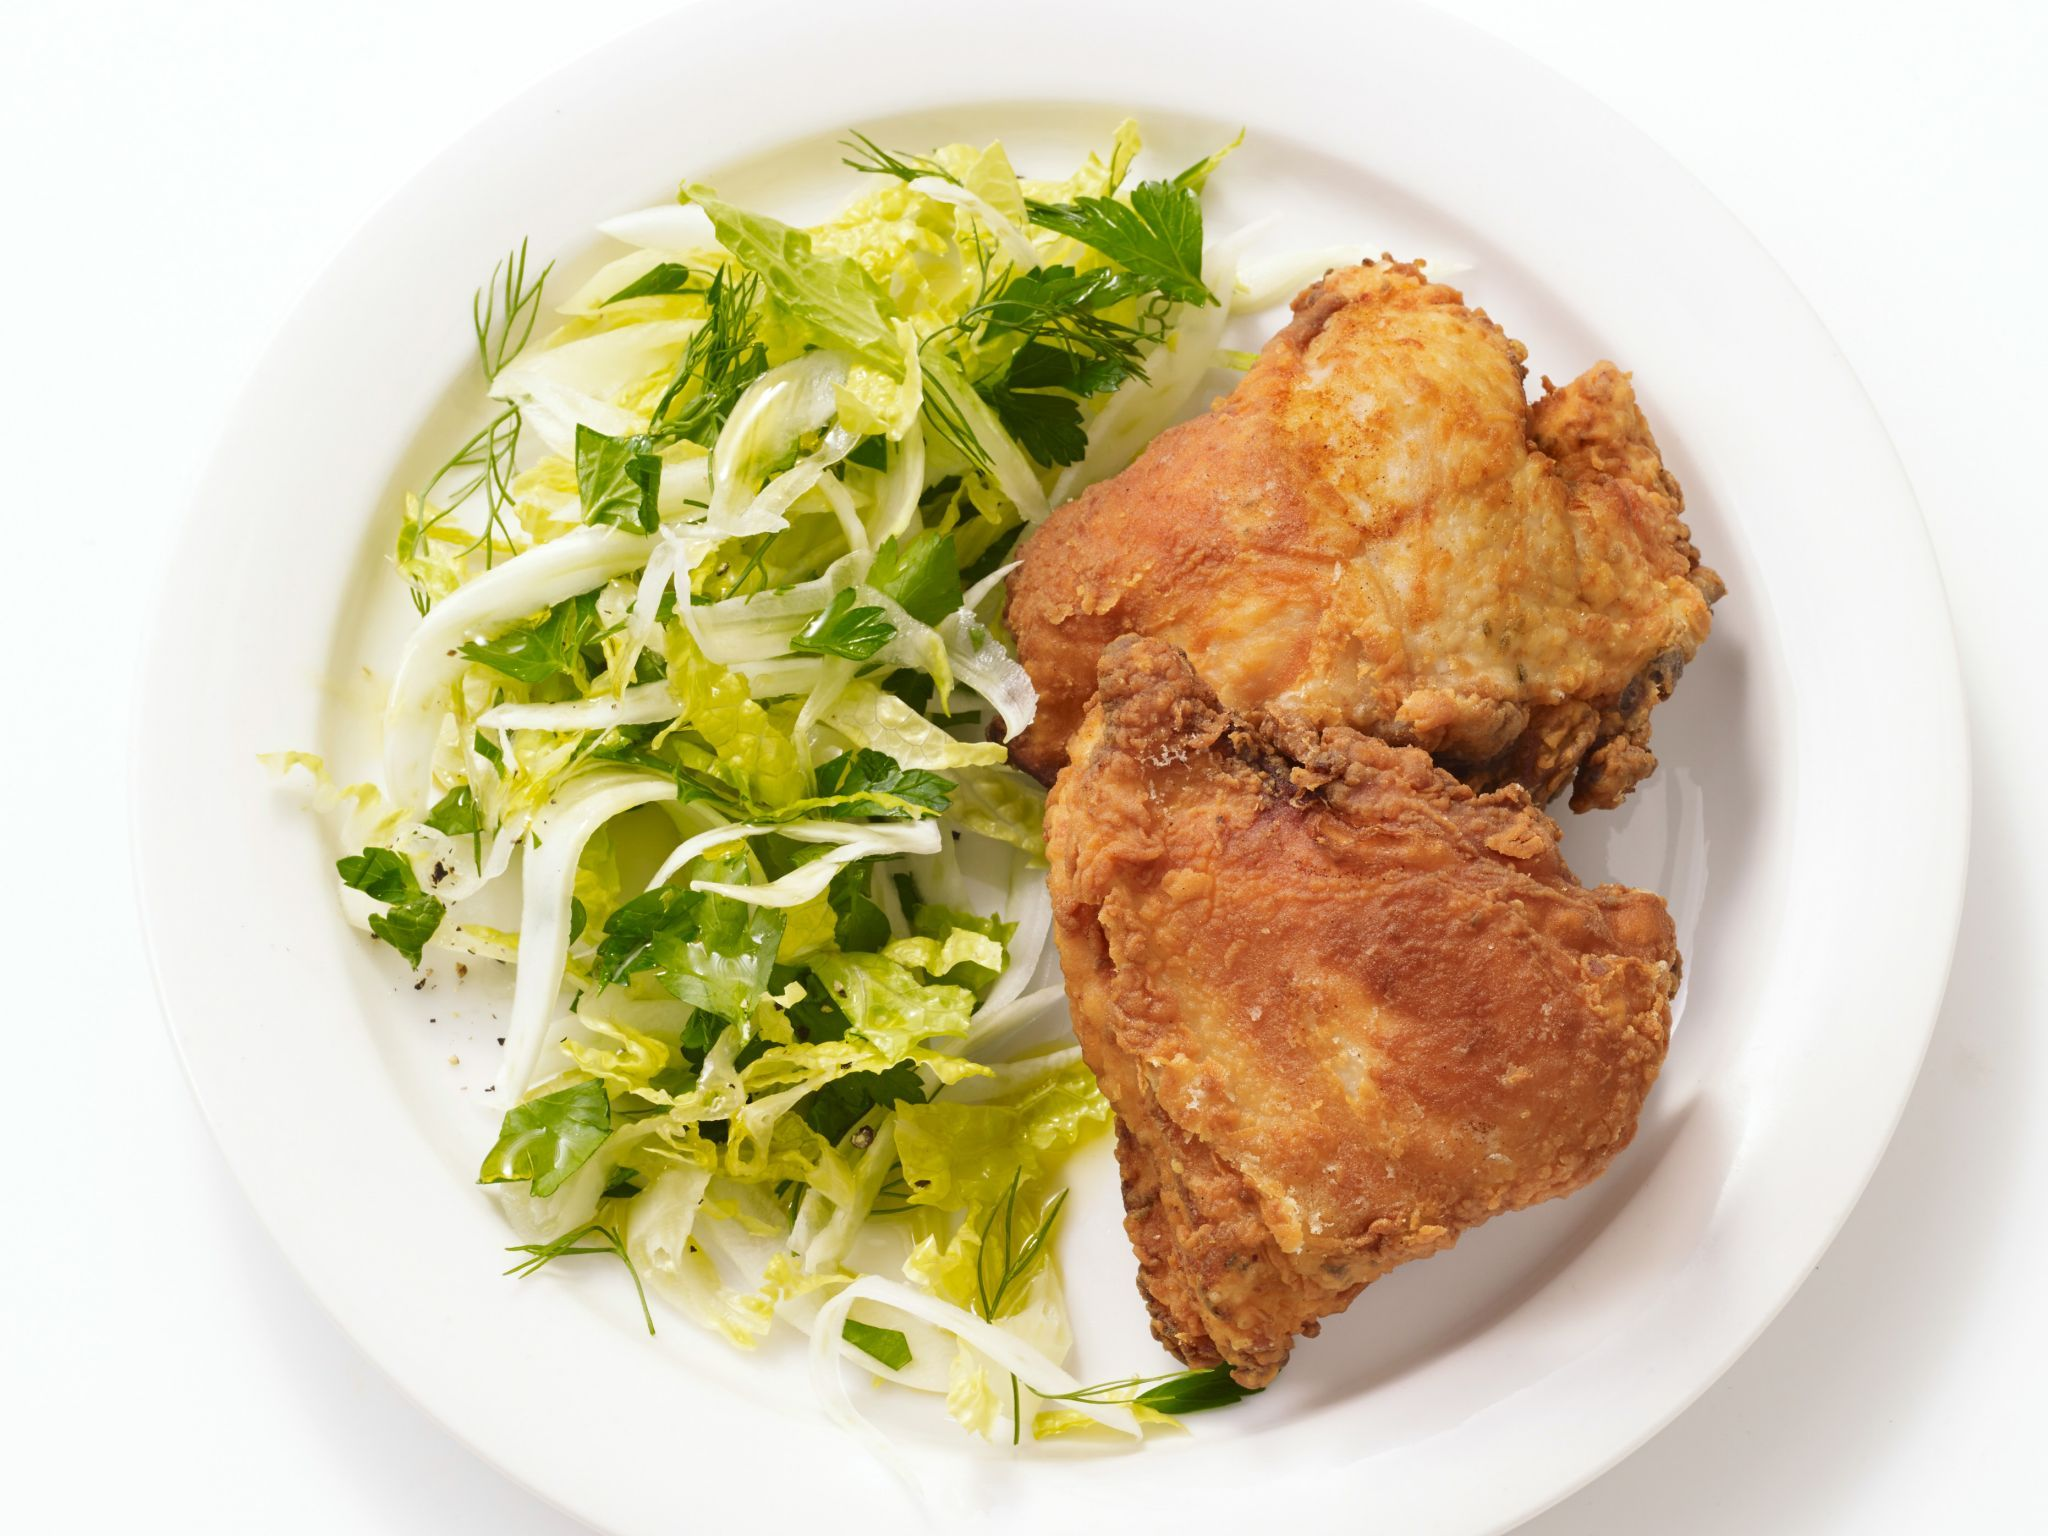 Italian fried chicken recipe fried chicken fried chicken foods forumfinder Image collections